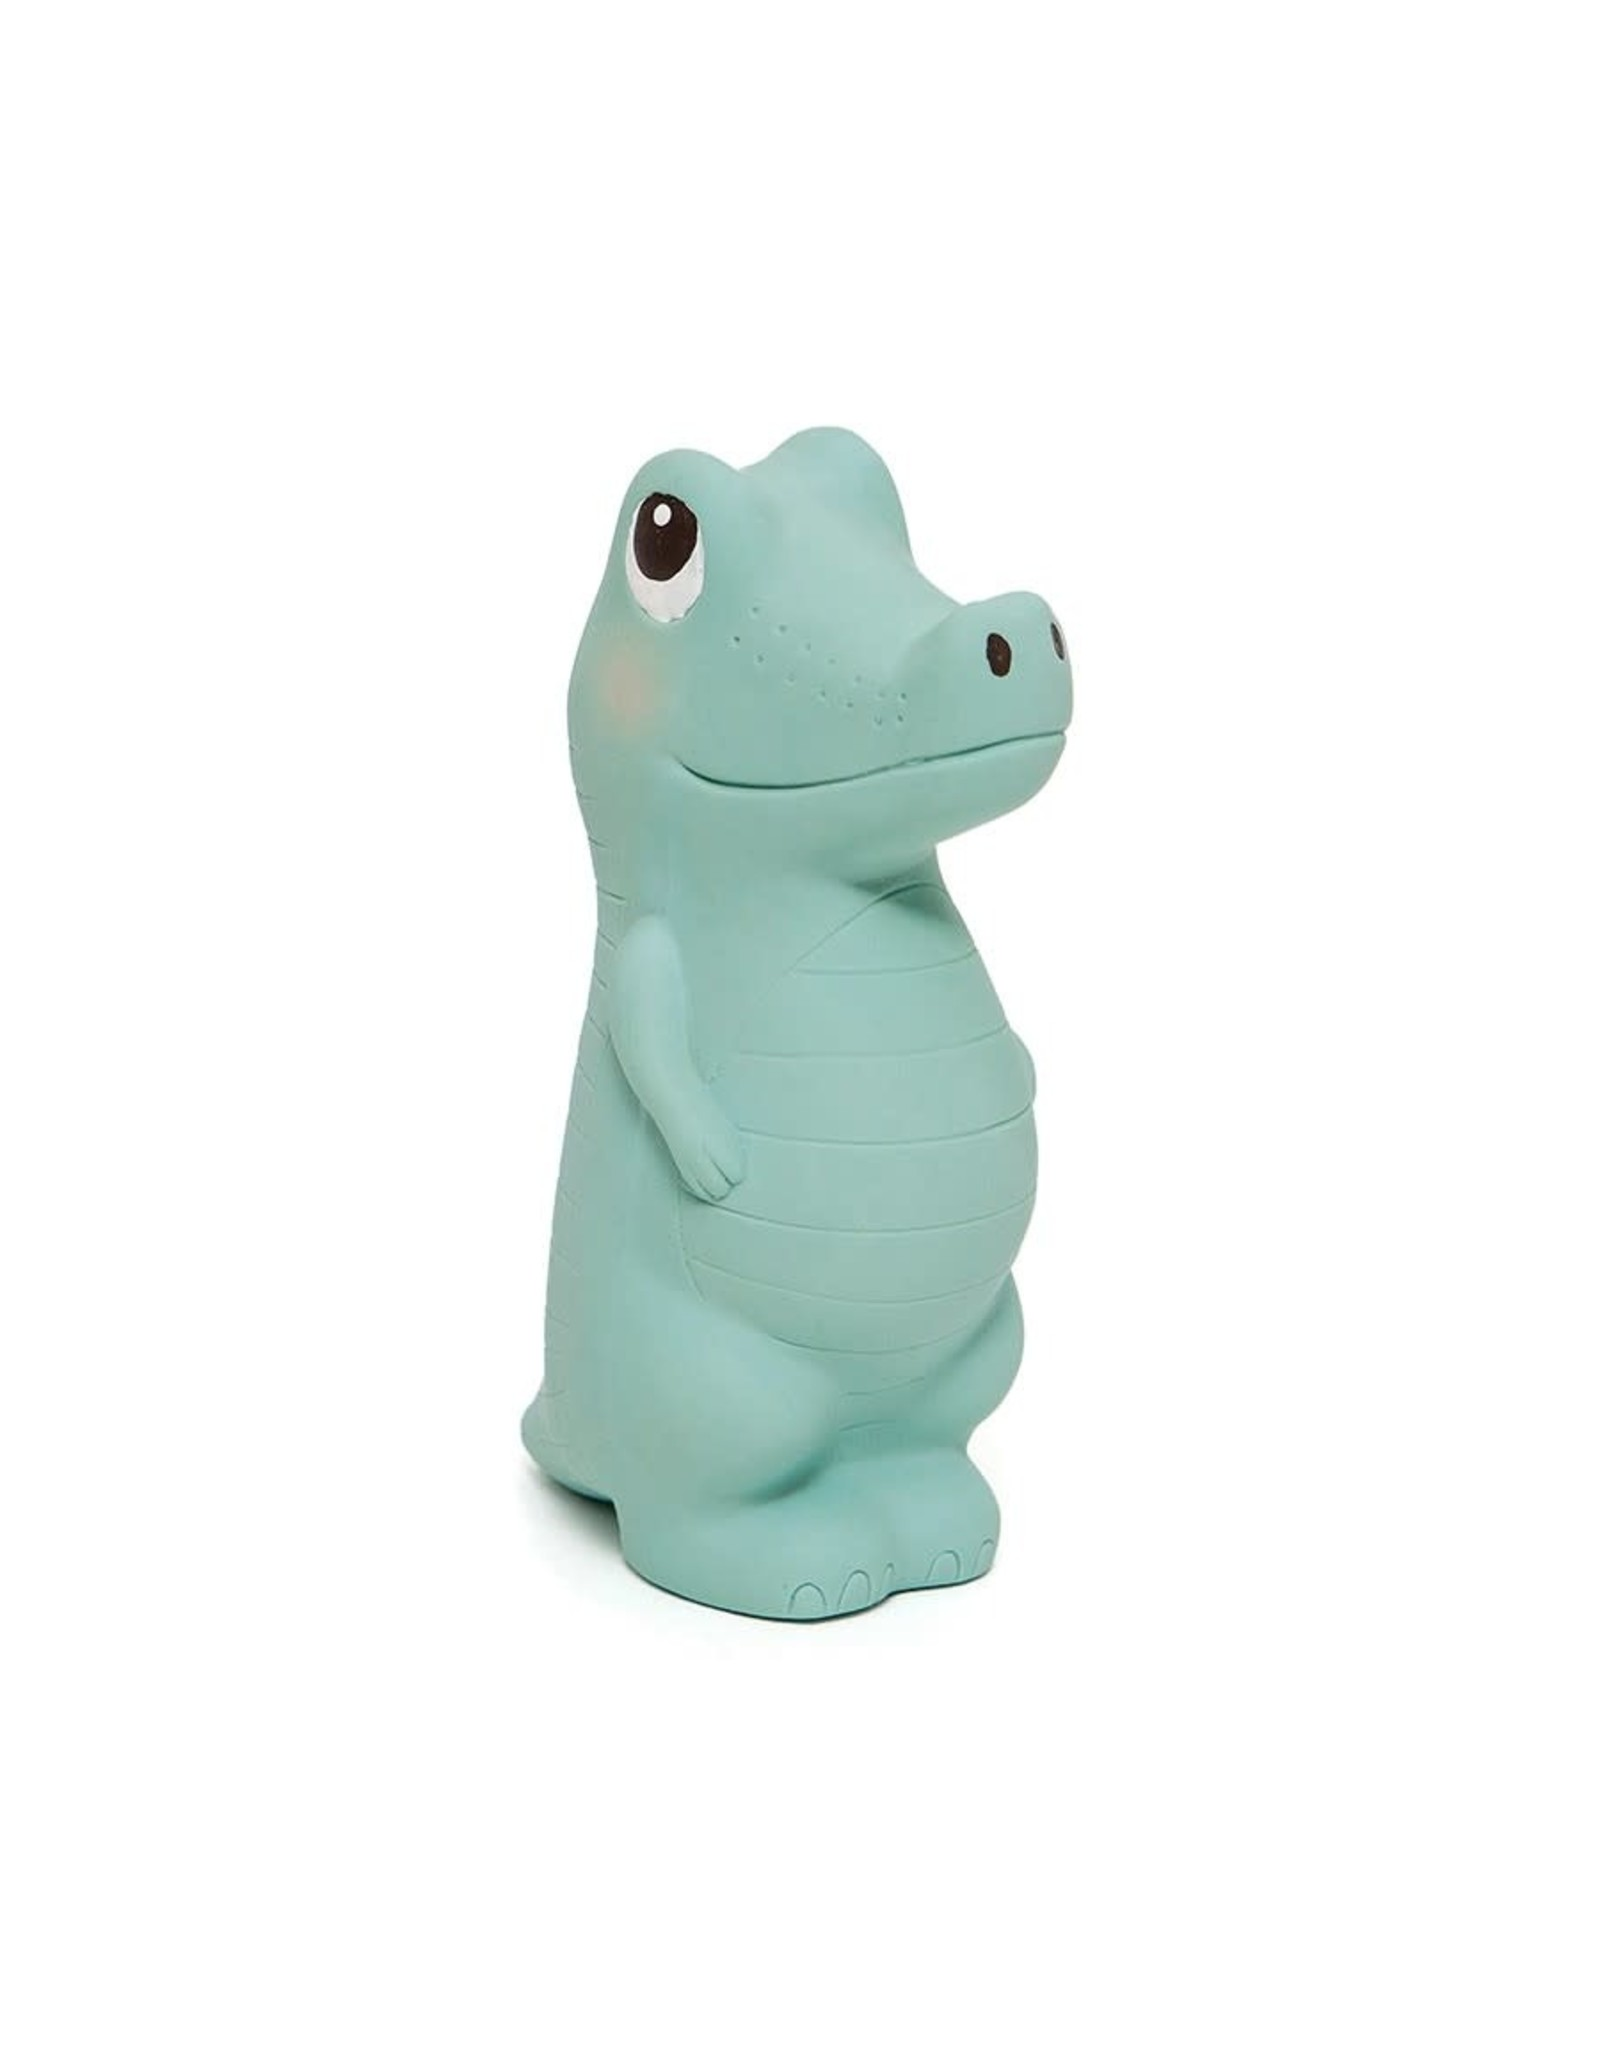 Petit Monkey 100% natural rubber toy Charlie the Crocodile